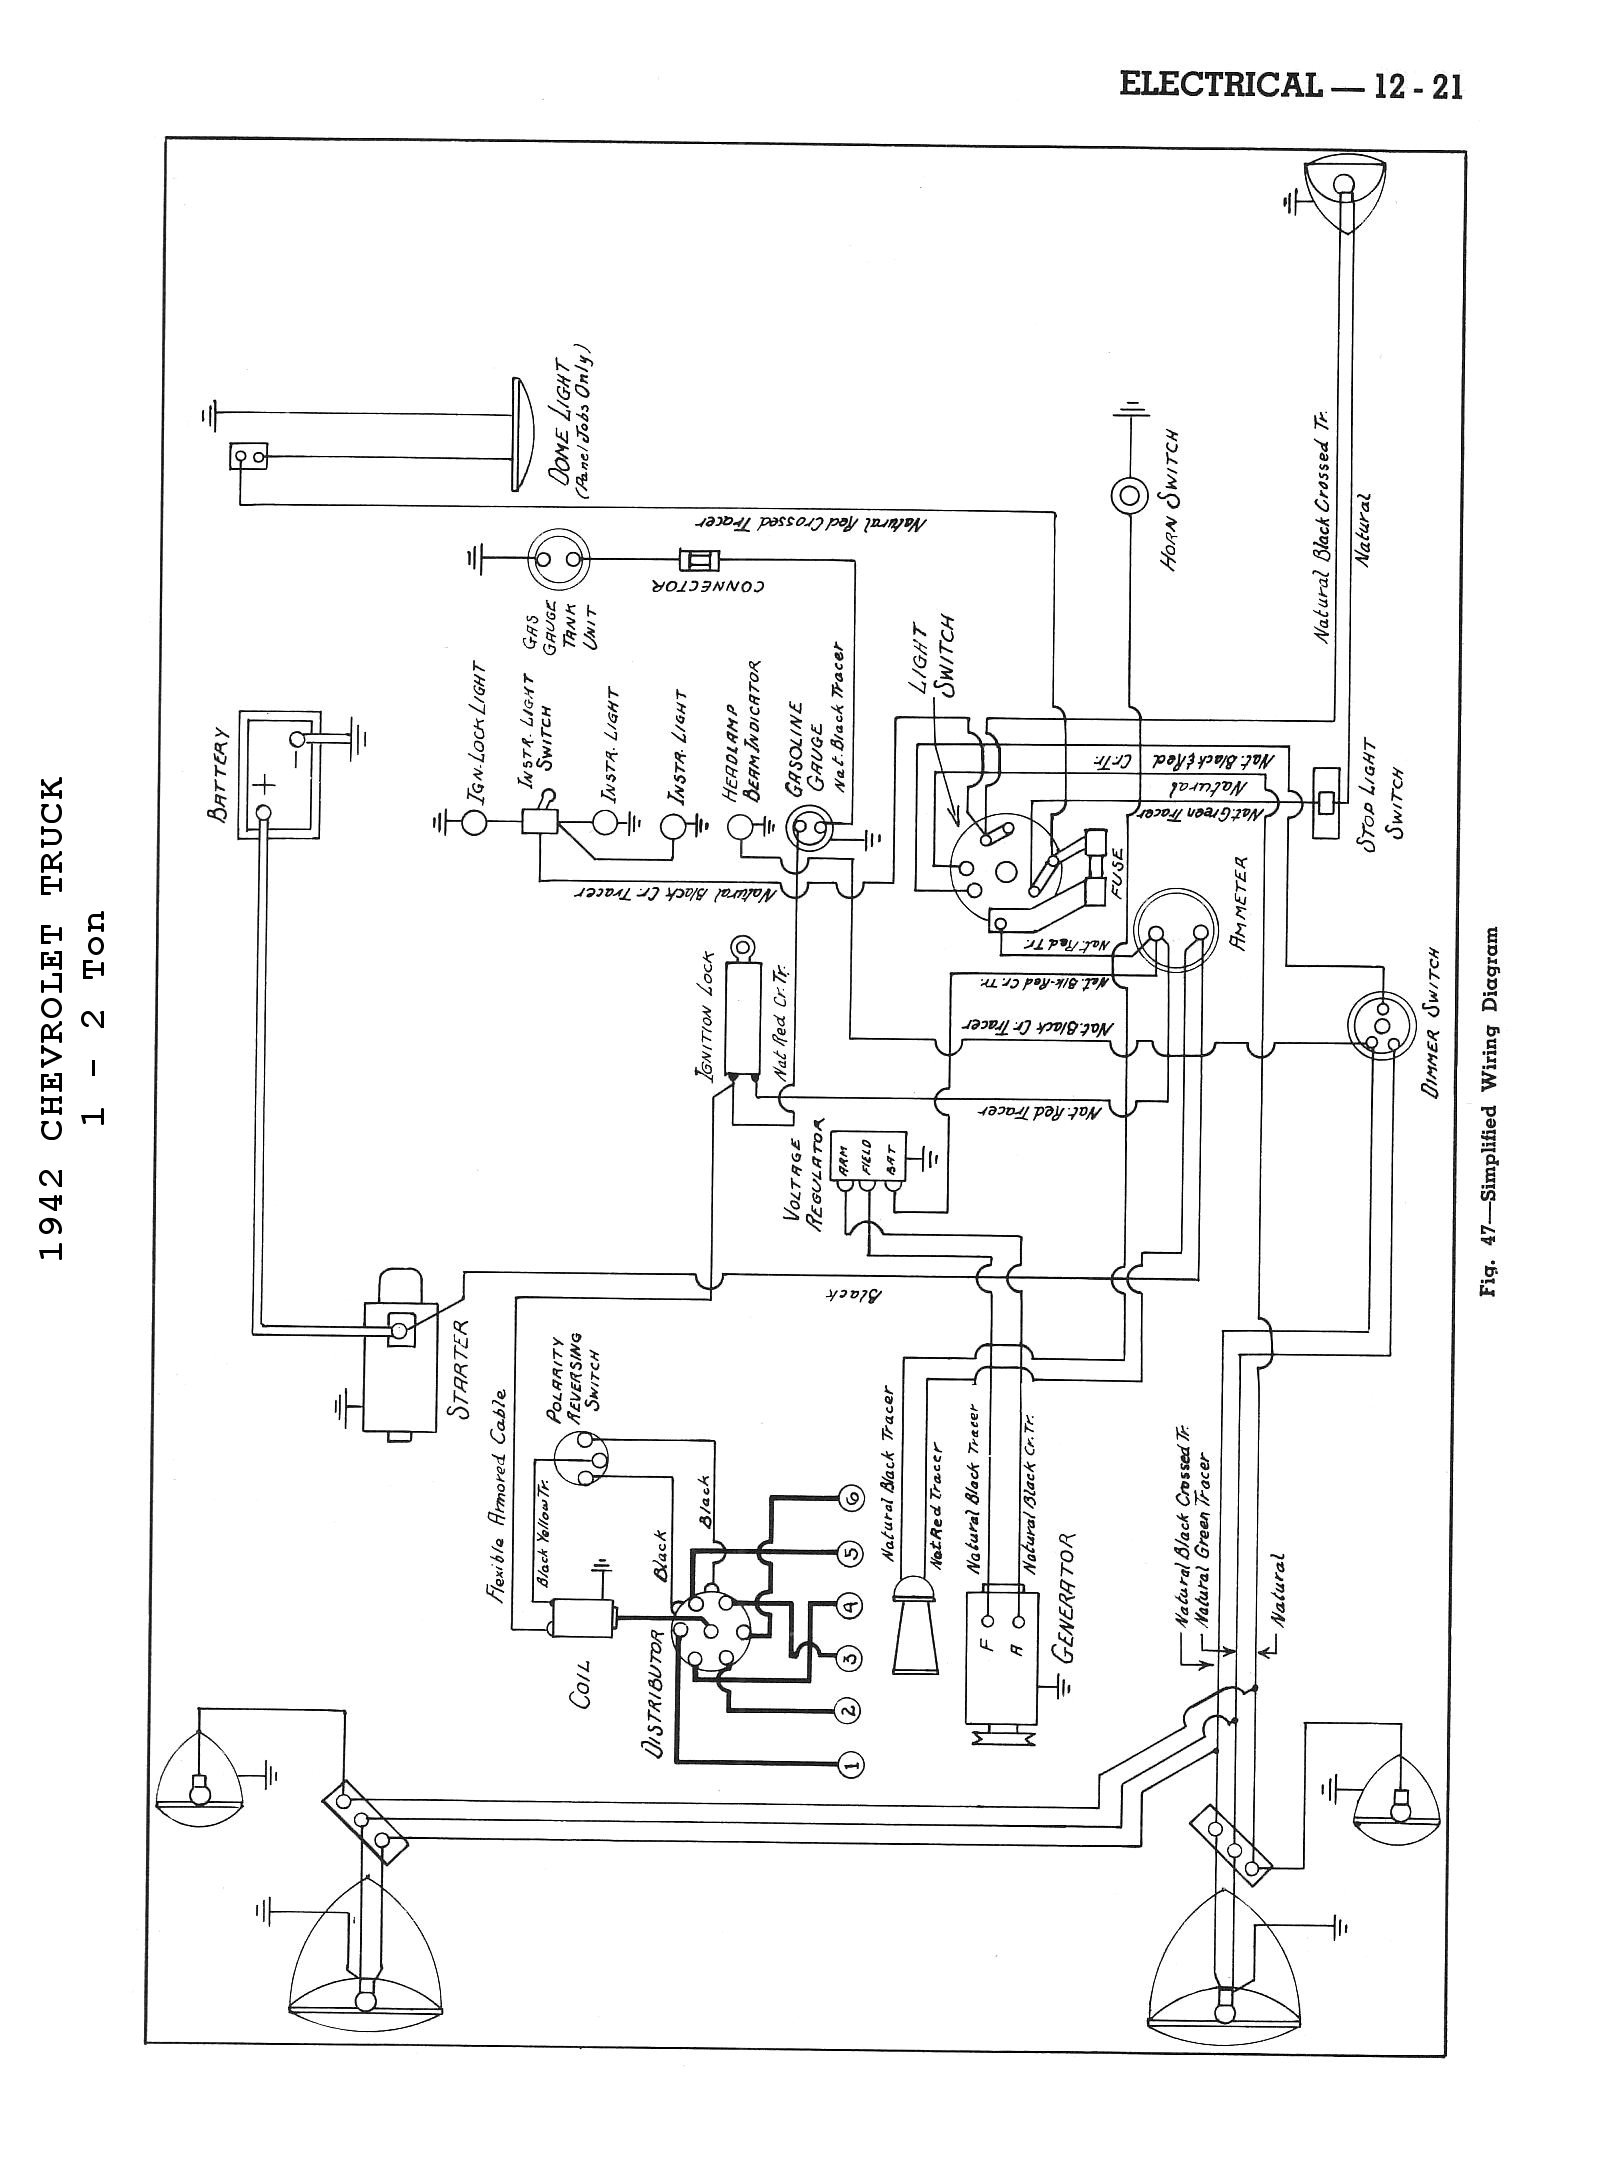 42cm4x2t1221 chevy wiring diagrams 1948 cadillac wiring diagram at gsmportal.co